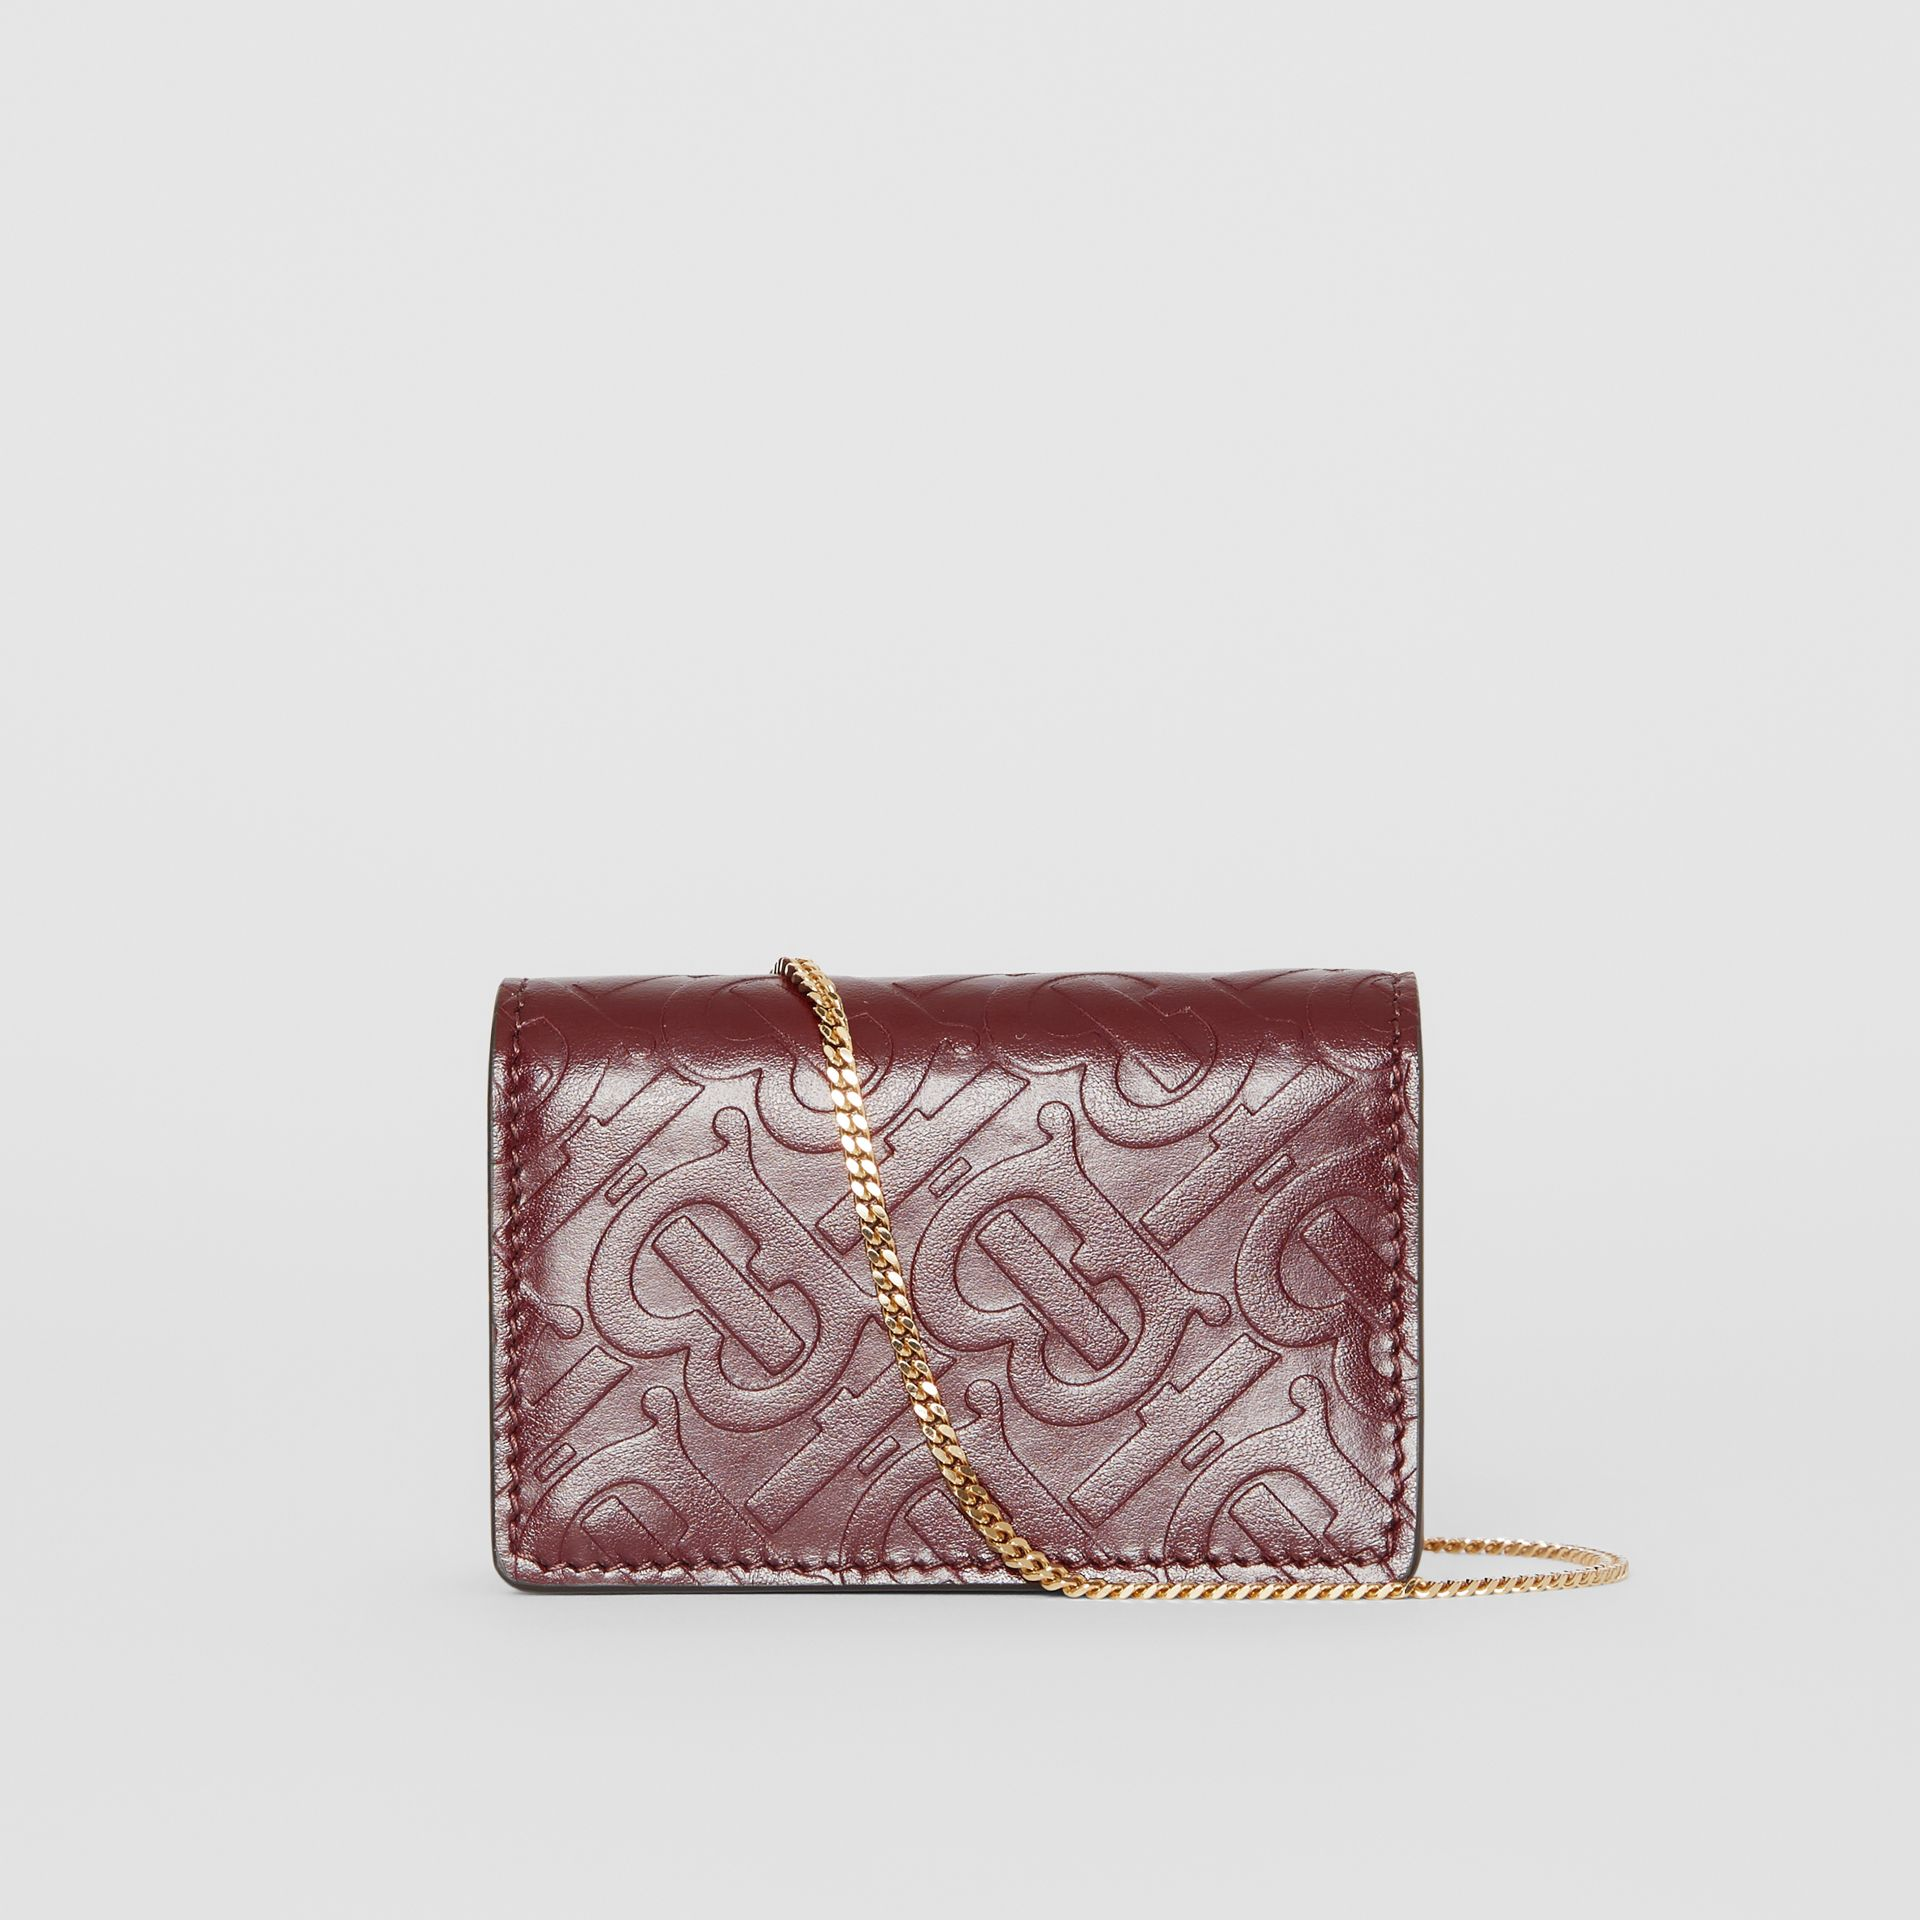 Monogram Leather Card Case with Detachable Strap in Oxblood - Women | Burberry - gallery image 5